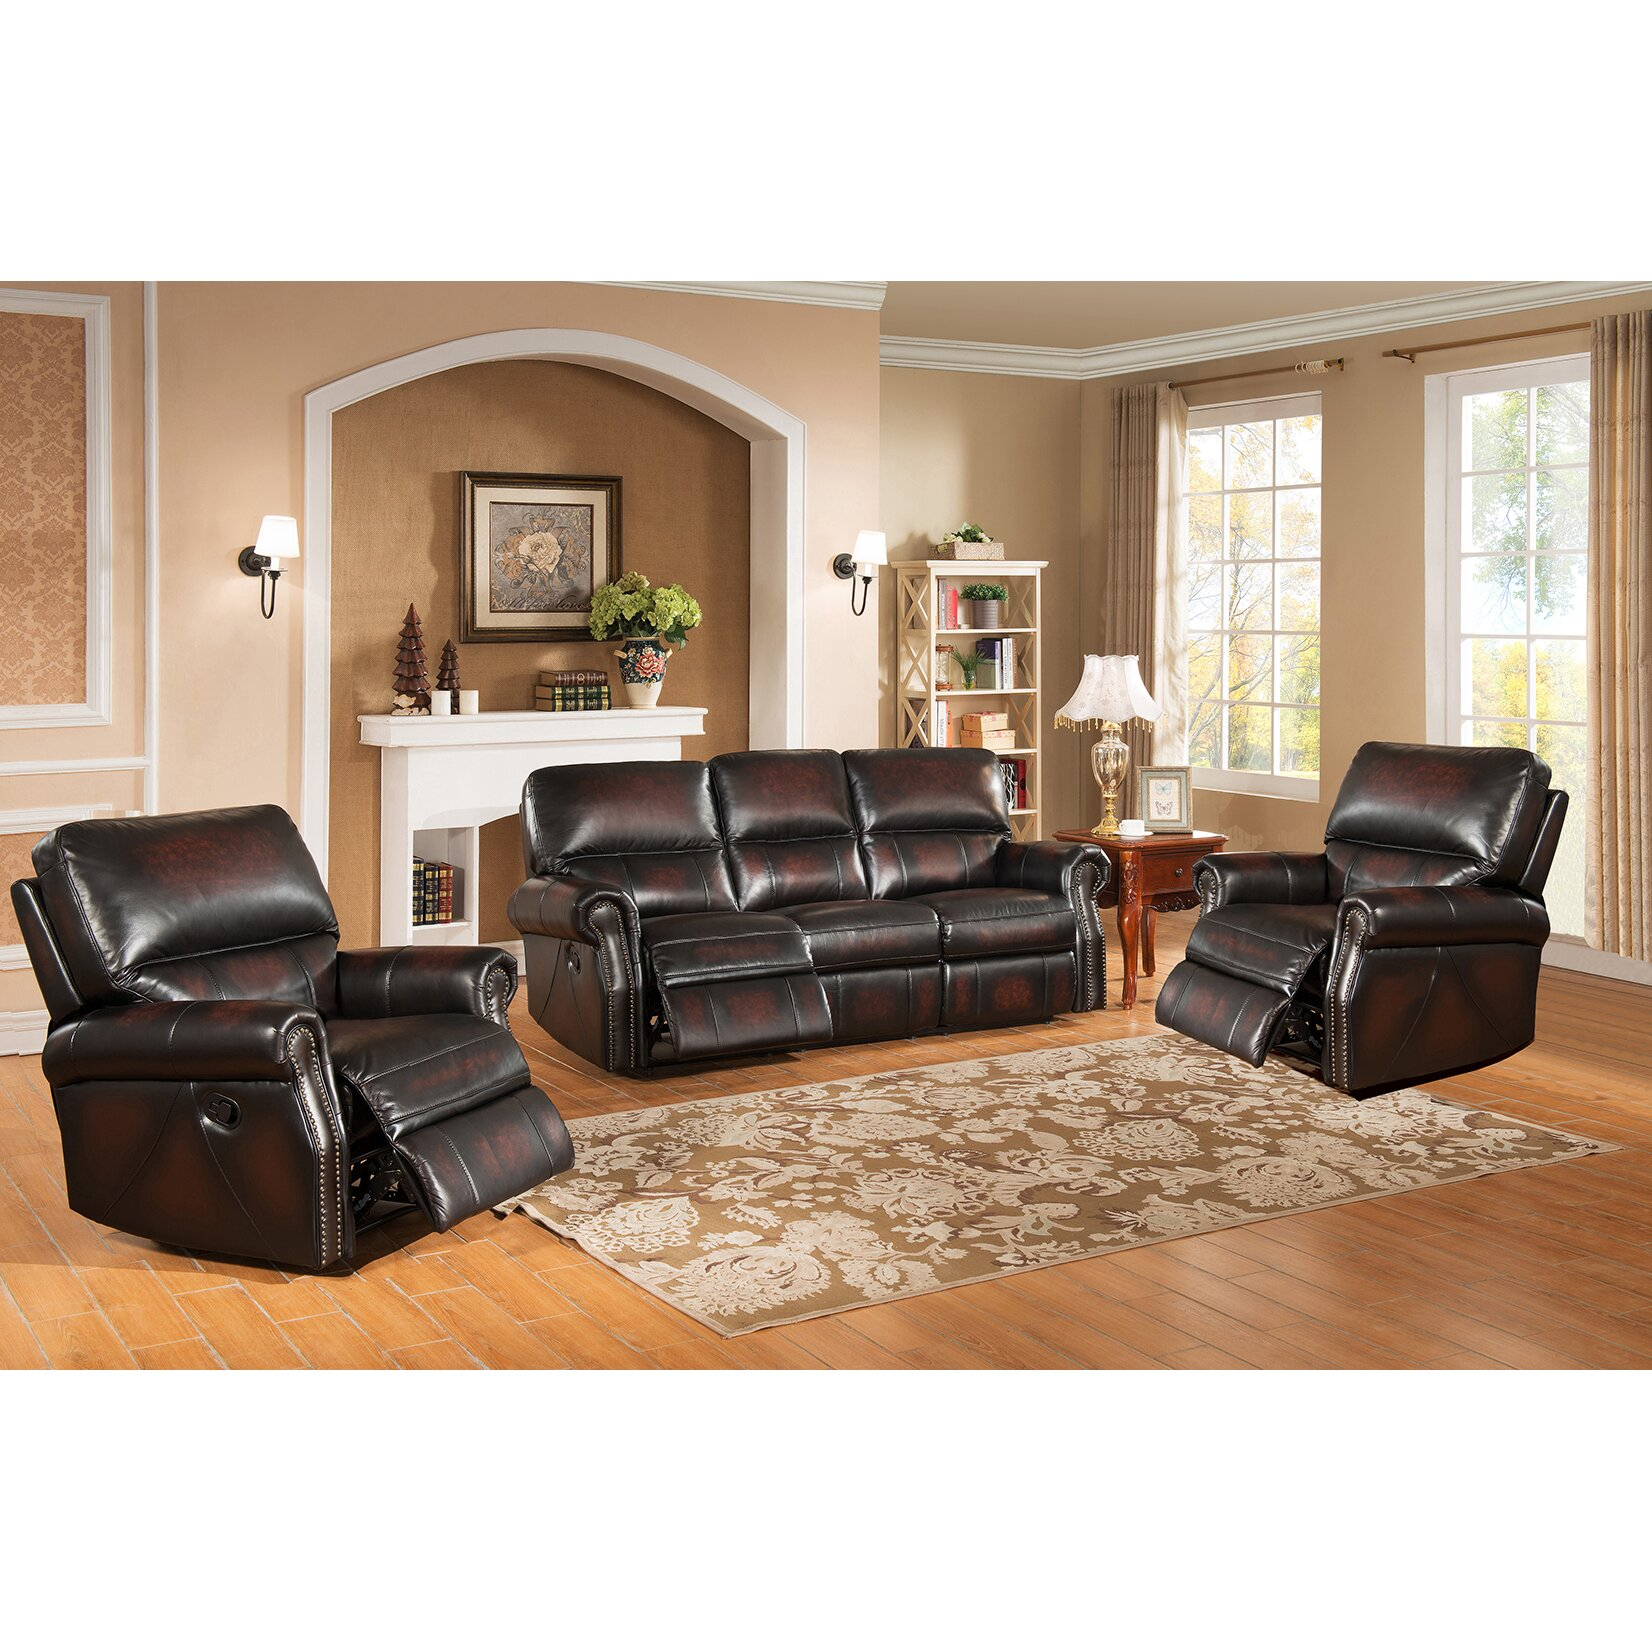 Three Piece Leather Living Room Set. Black Leather Living Room Furniture Sets. Small Living Room Sets. Living Room Picture Hanging Ideas. Beautiful Sofas For Living Room. Formal Living Room Furniture. Animal Print Chairs Living Room. Durable Living Room Furniture. Blue Curtains Living Room